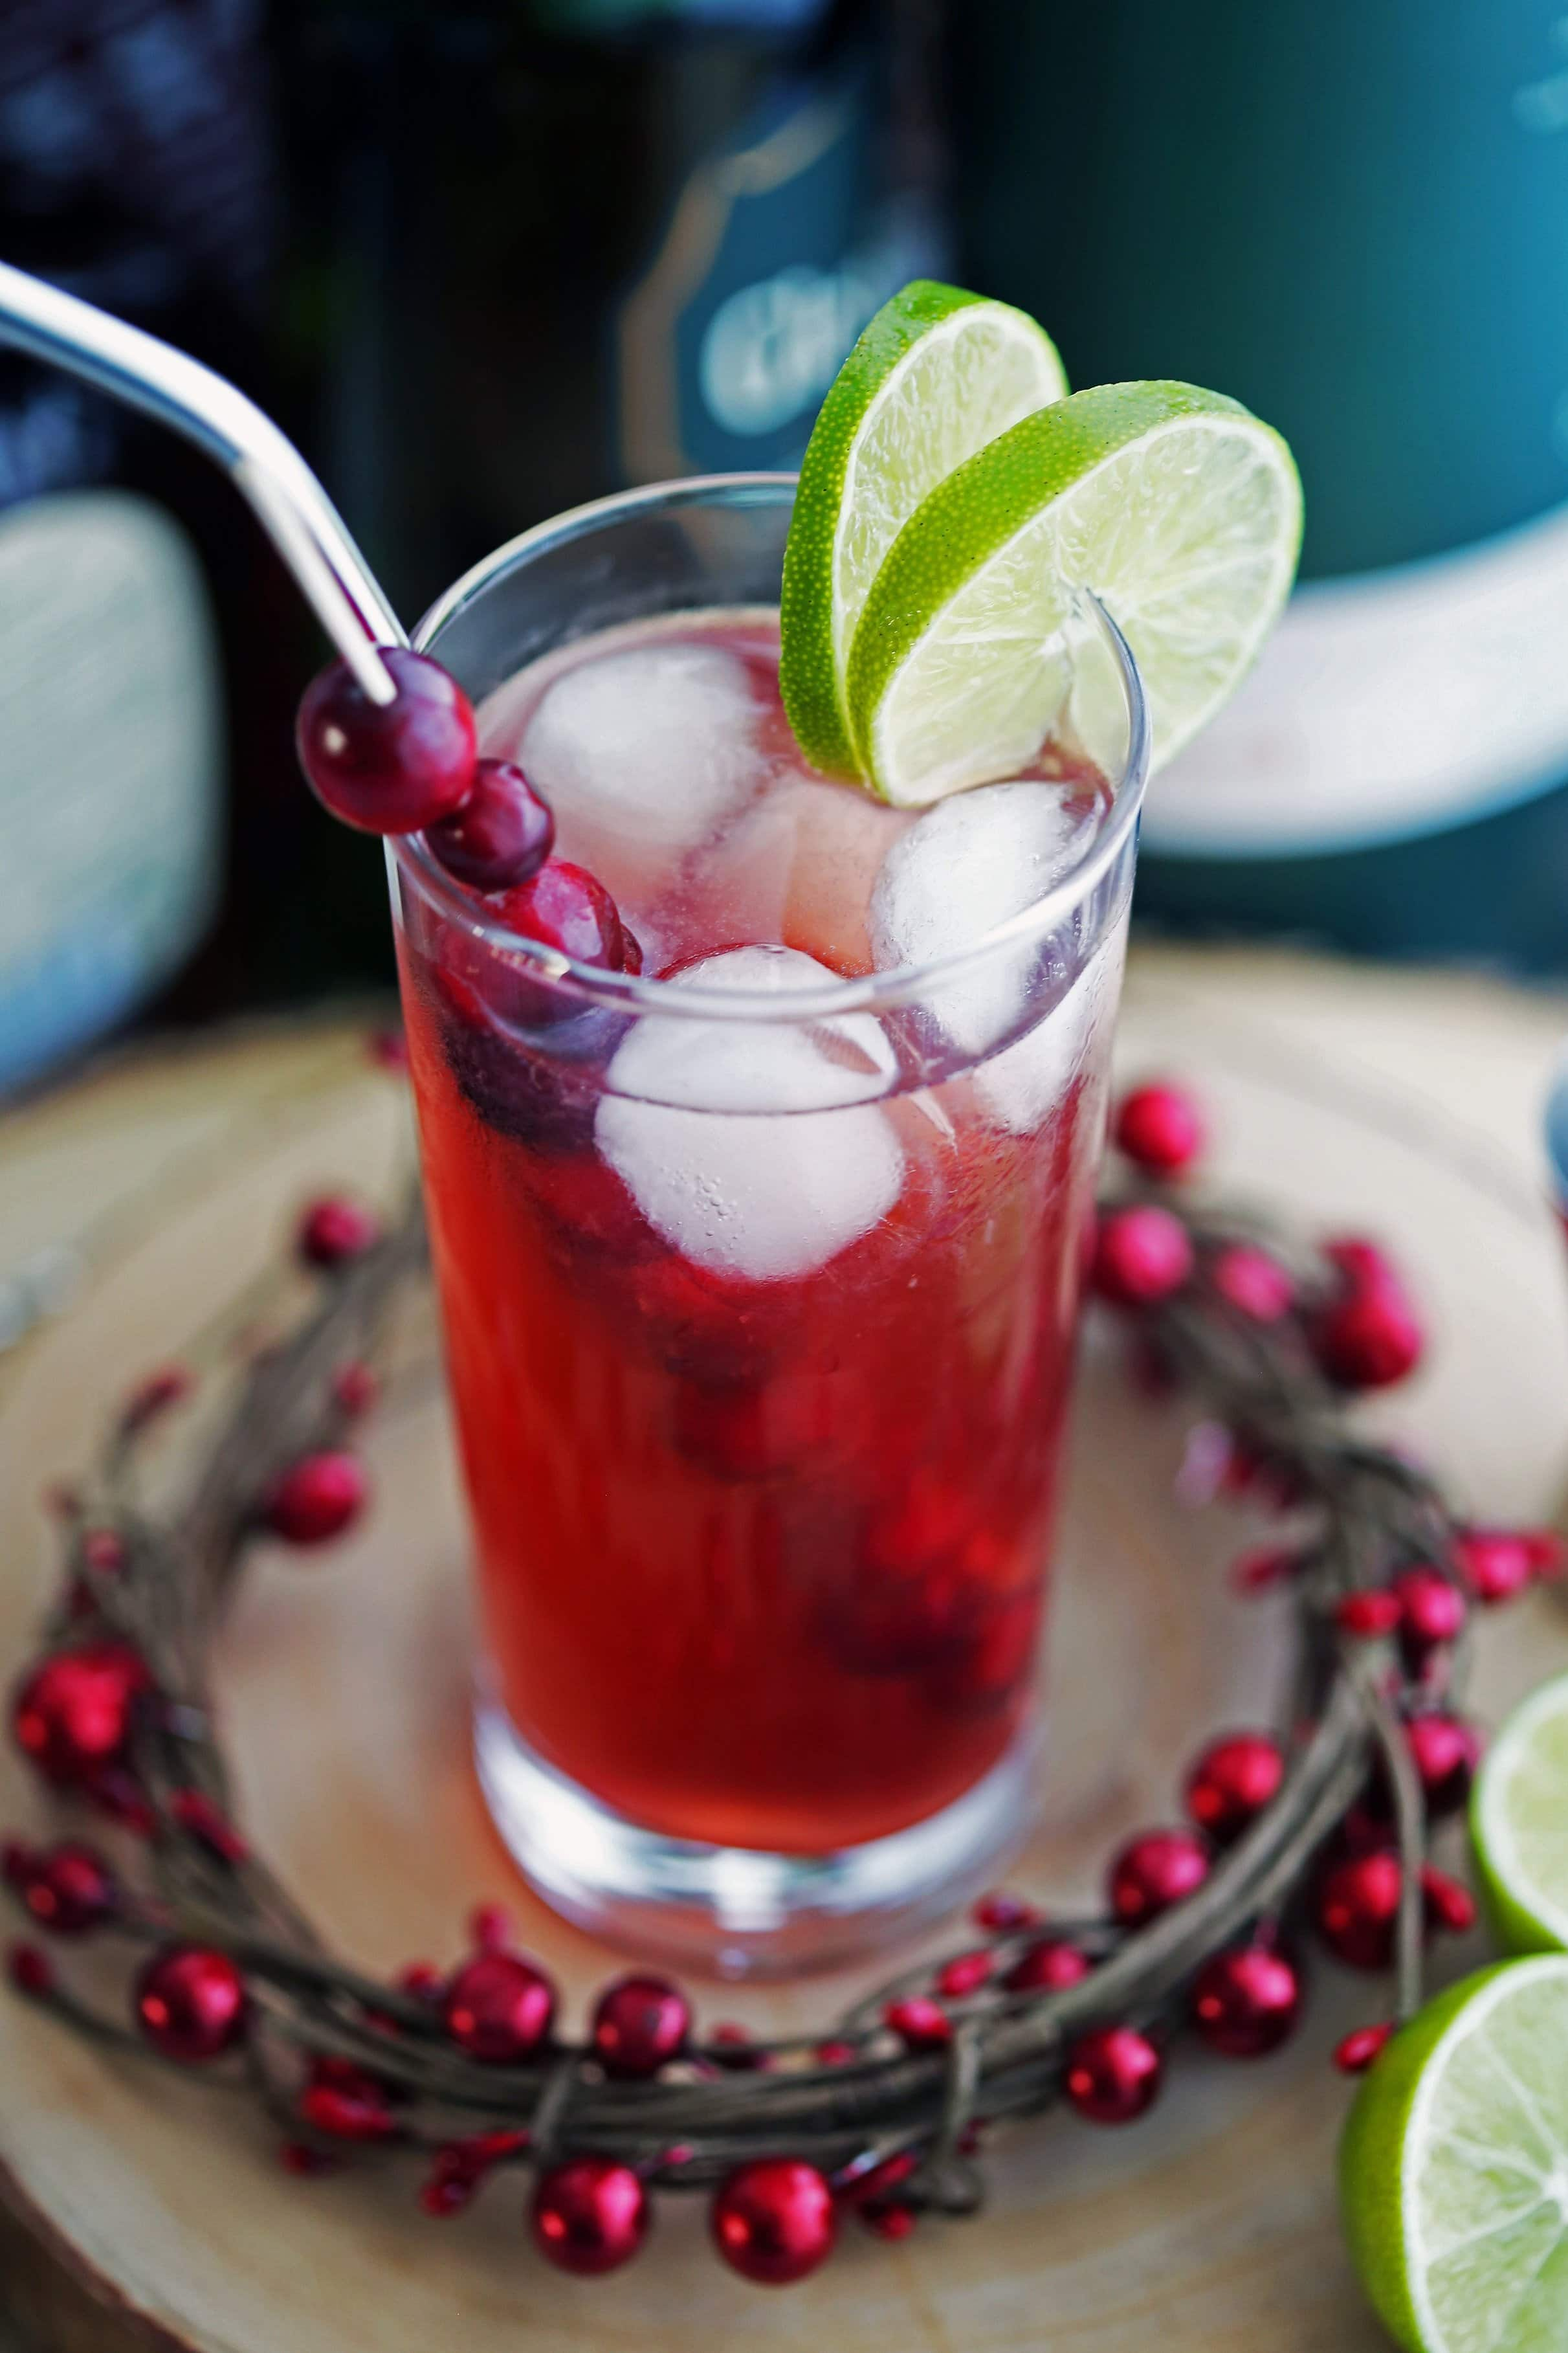 Cranberry Whiskey Ginger Cocktail in a highball glass with lime slices, fresh cranberries, ice cubes, and a stainless steel straw.